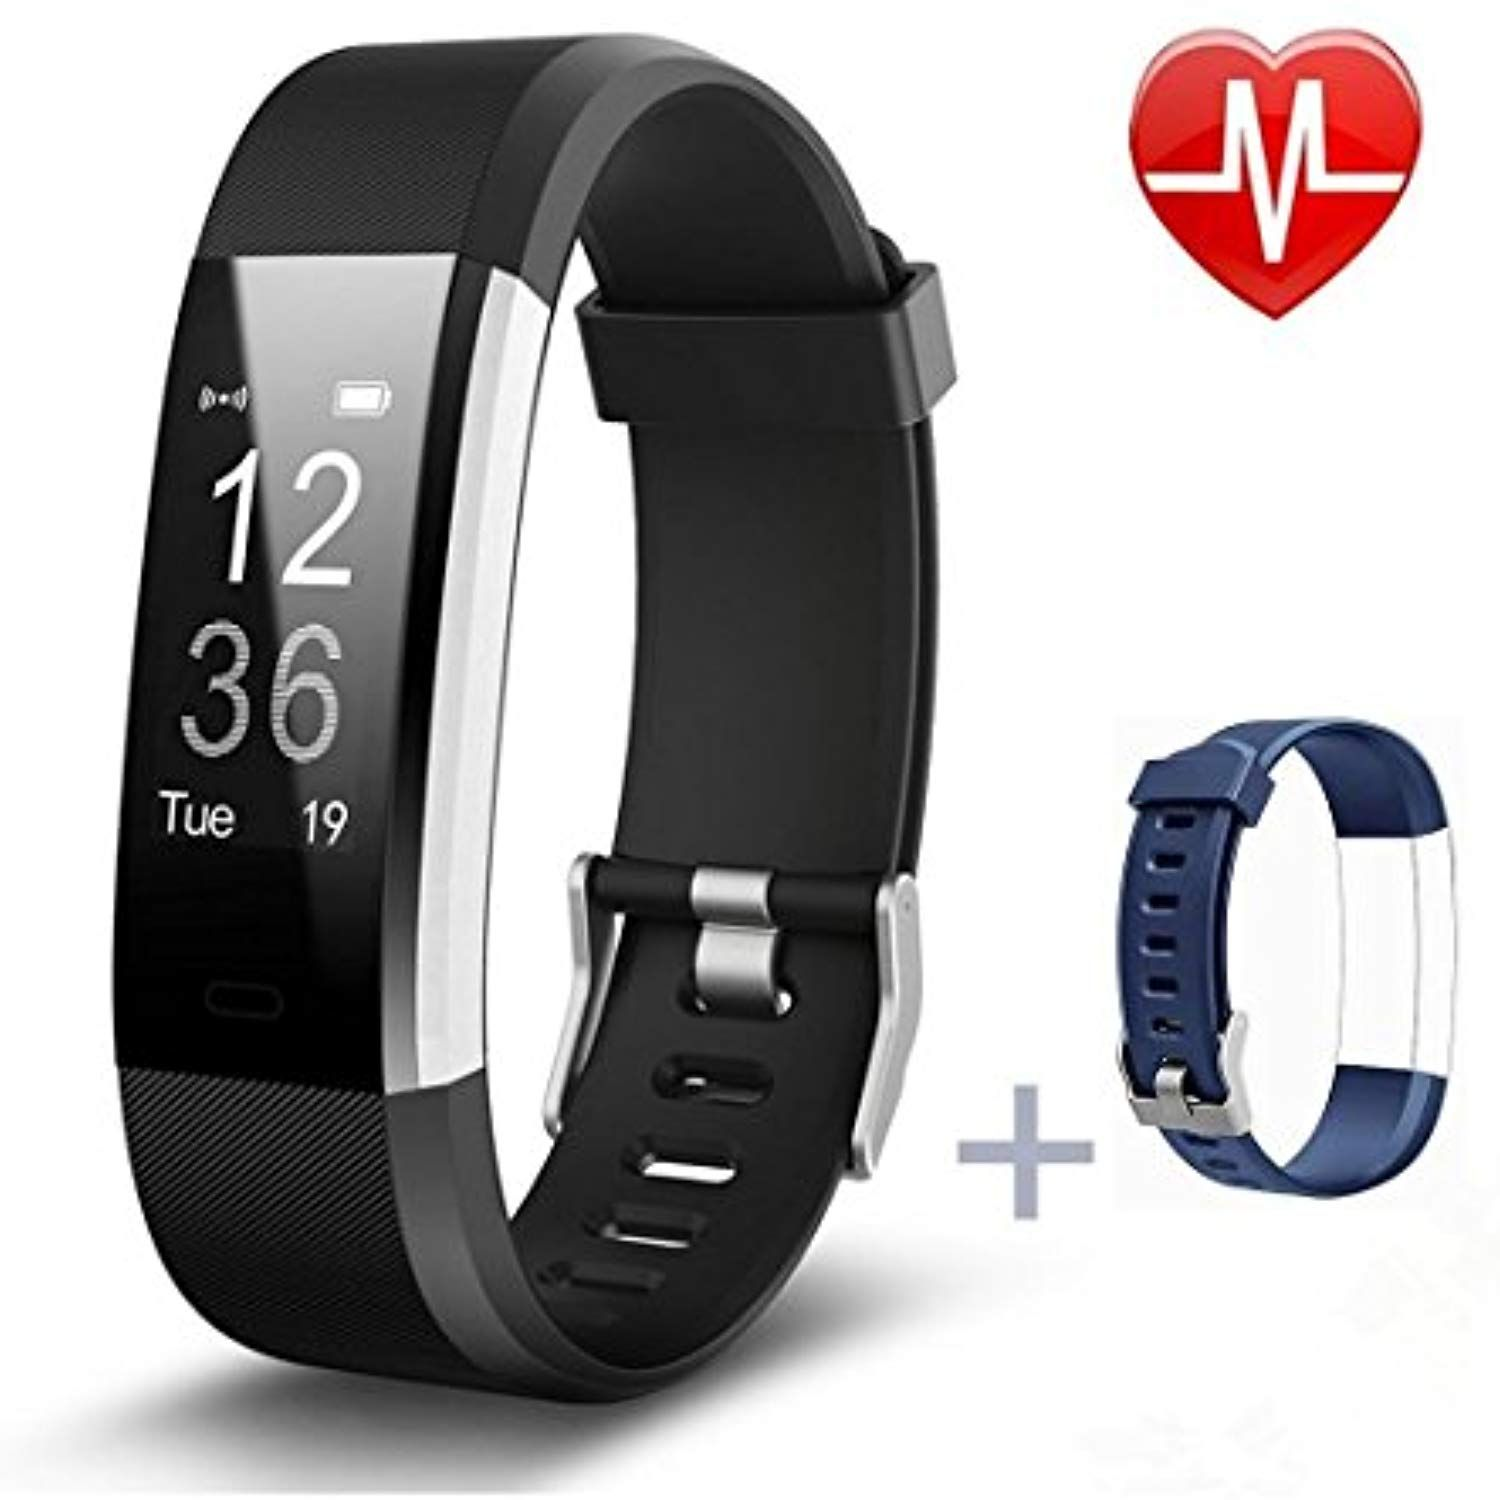 Vistatroy Usb Recharge Fitness Tracker Remote Camera Control Watch